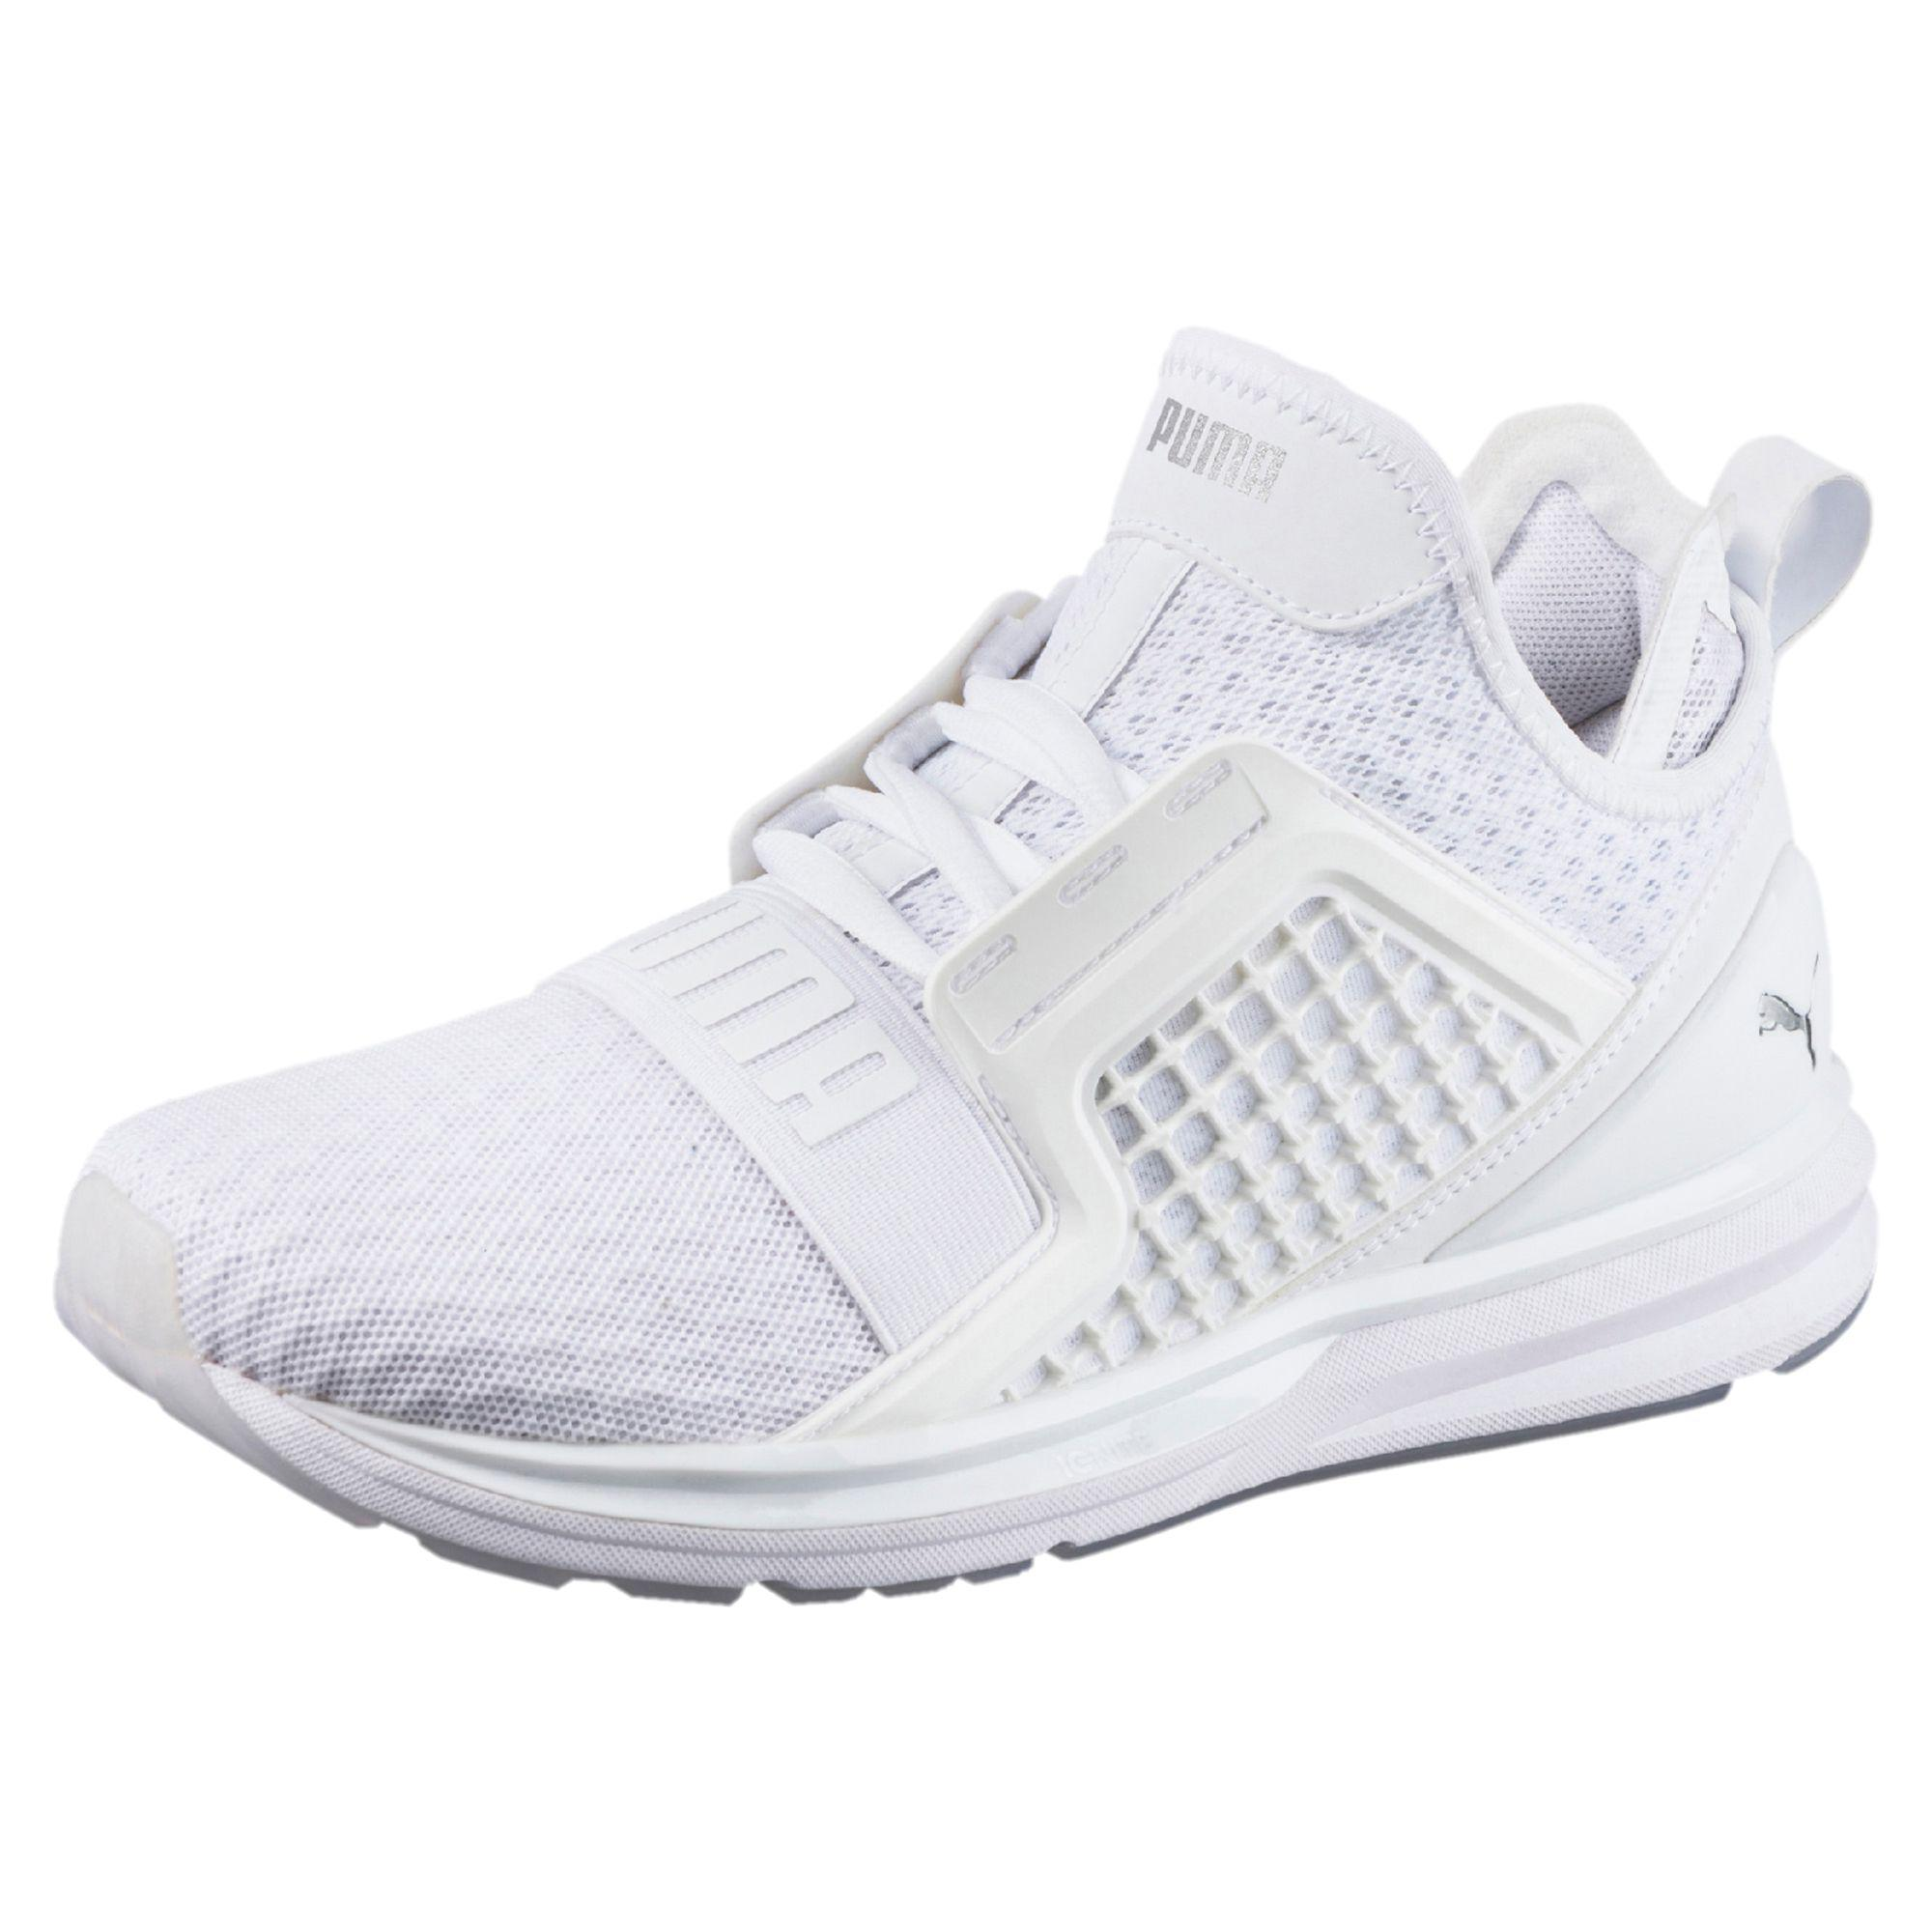 Ignite Limitless Women's Training Shoes